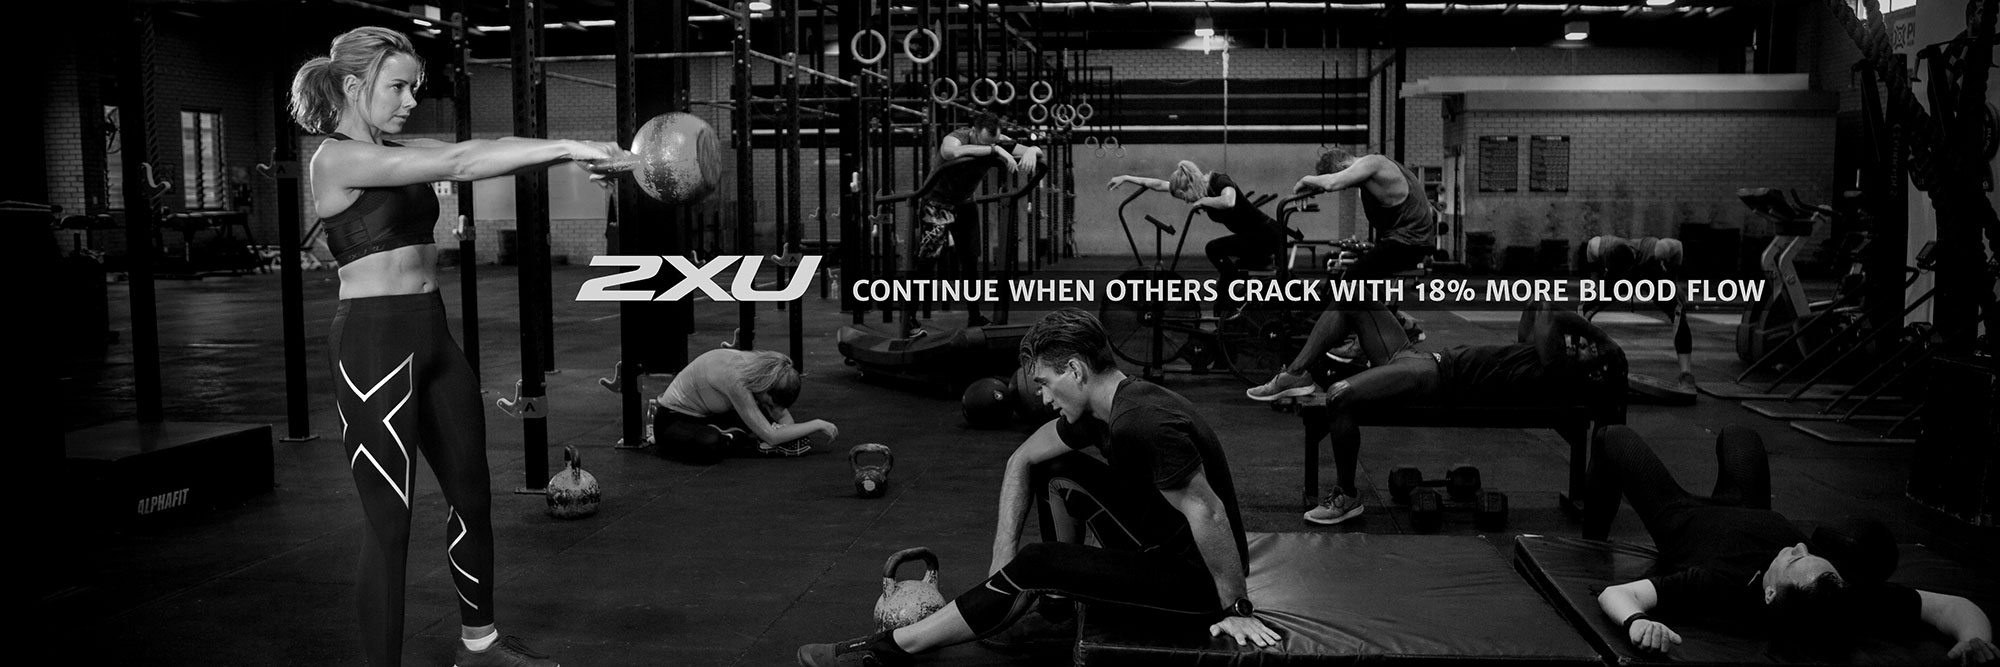 2XU Advanced Performance Apparel